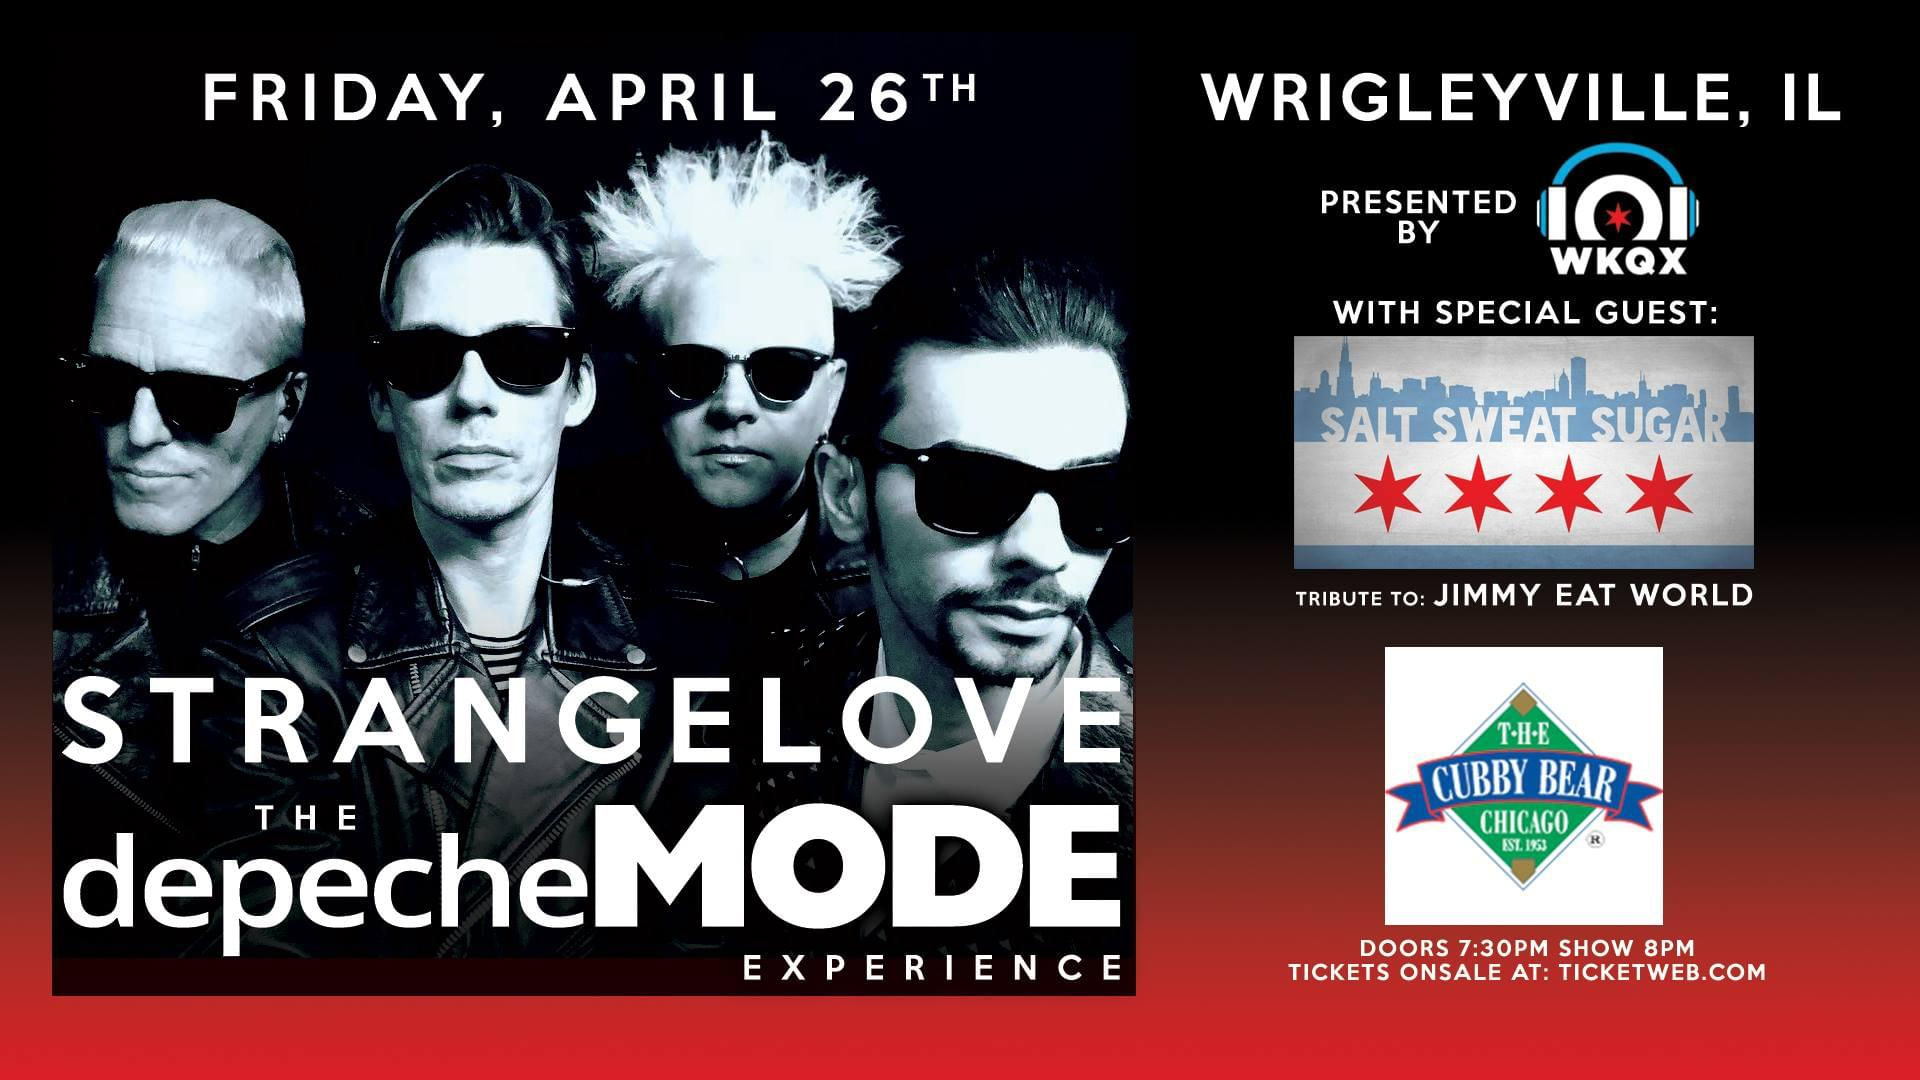 4/26/19 – STRANGELOVE The Depeche MODE Experience at Cubby Bear